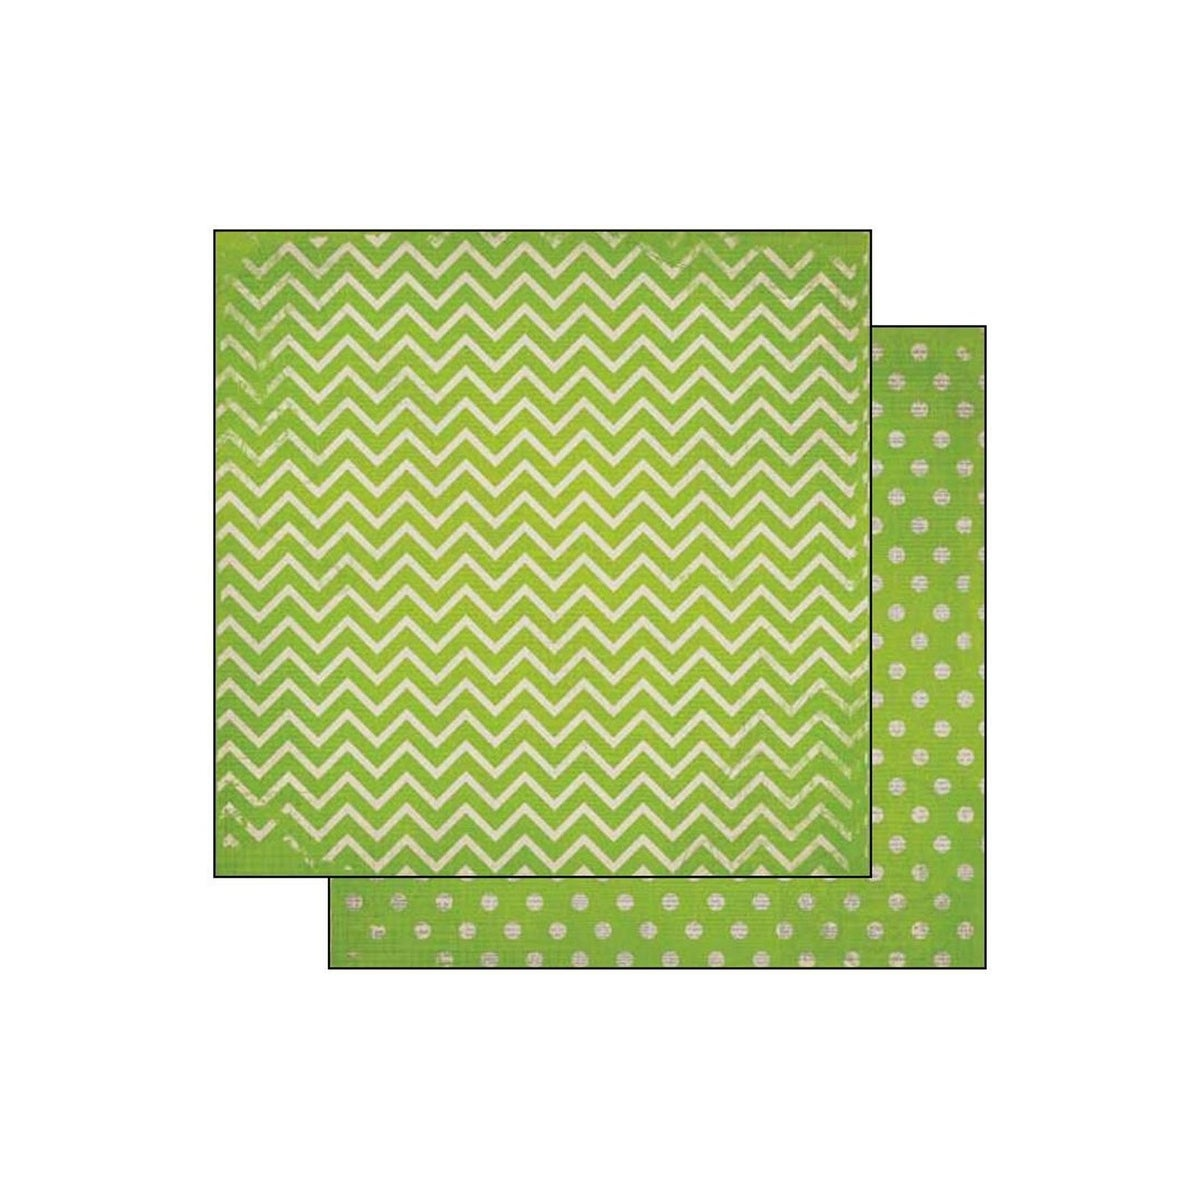 BoBunny 12x12 Scrapbooking paper Double Dot Collection island mist x 2 sheets